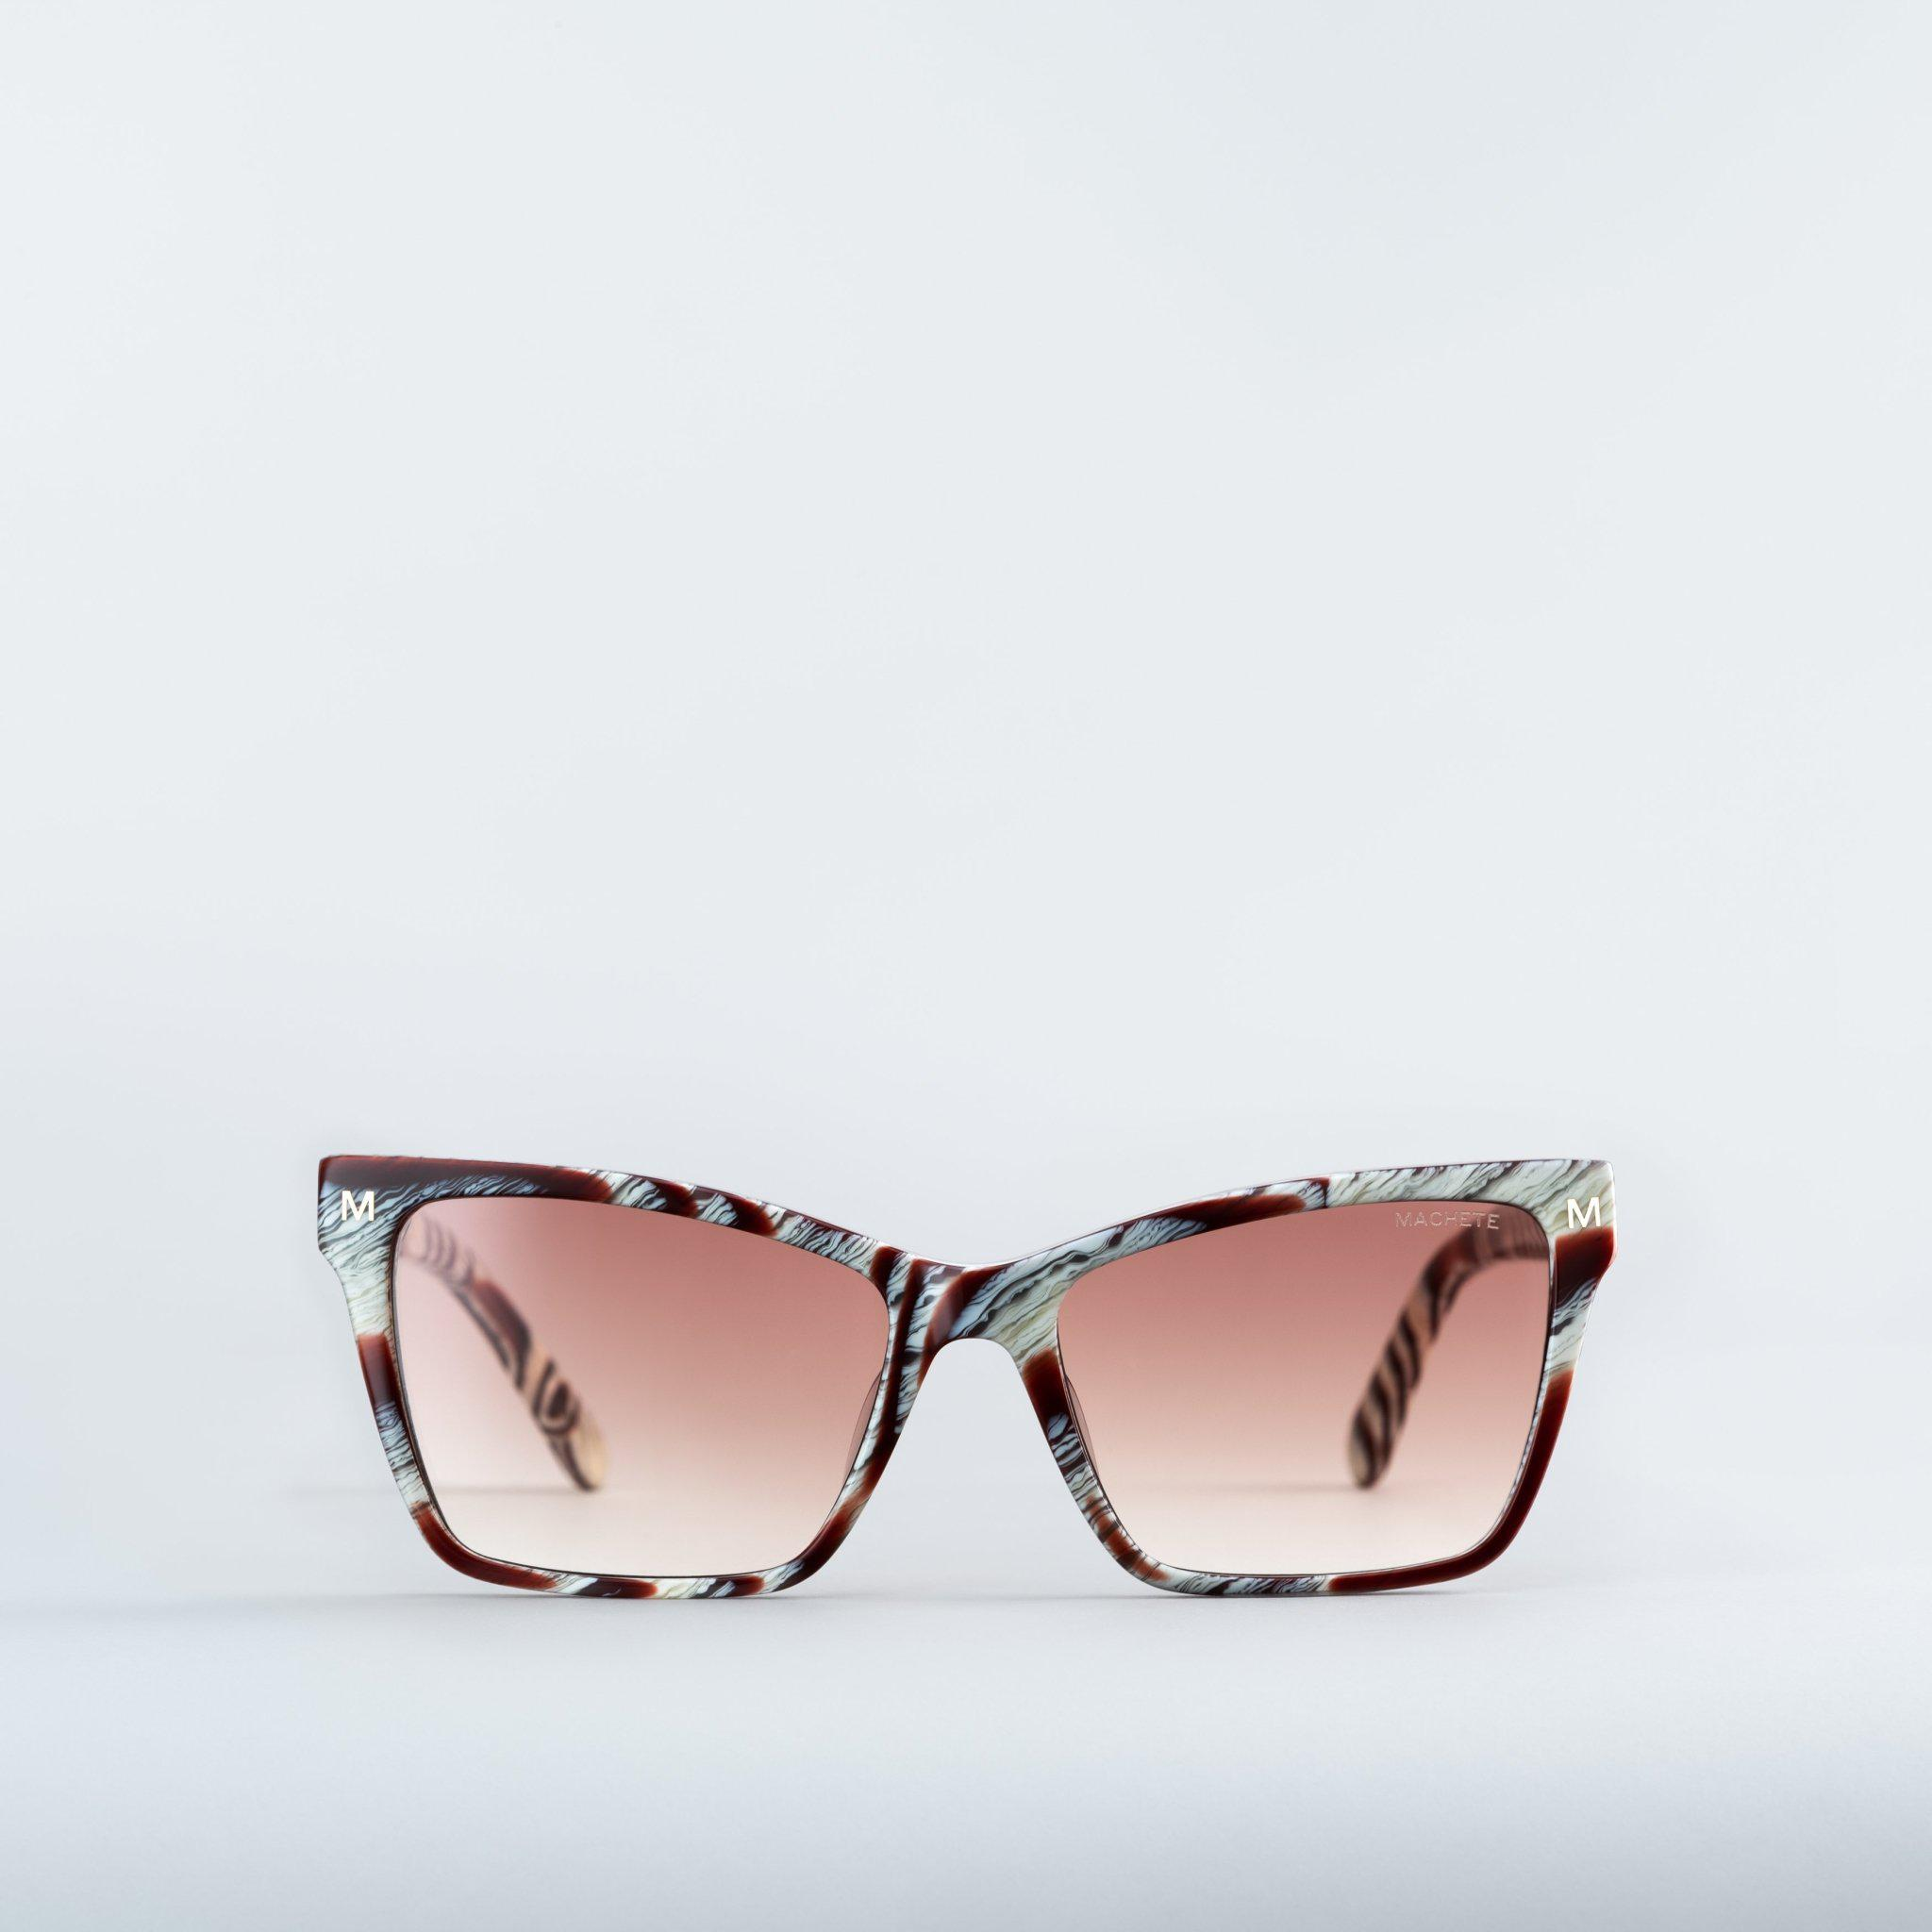 Sally - Sunglasses in Canyon Brown